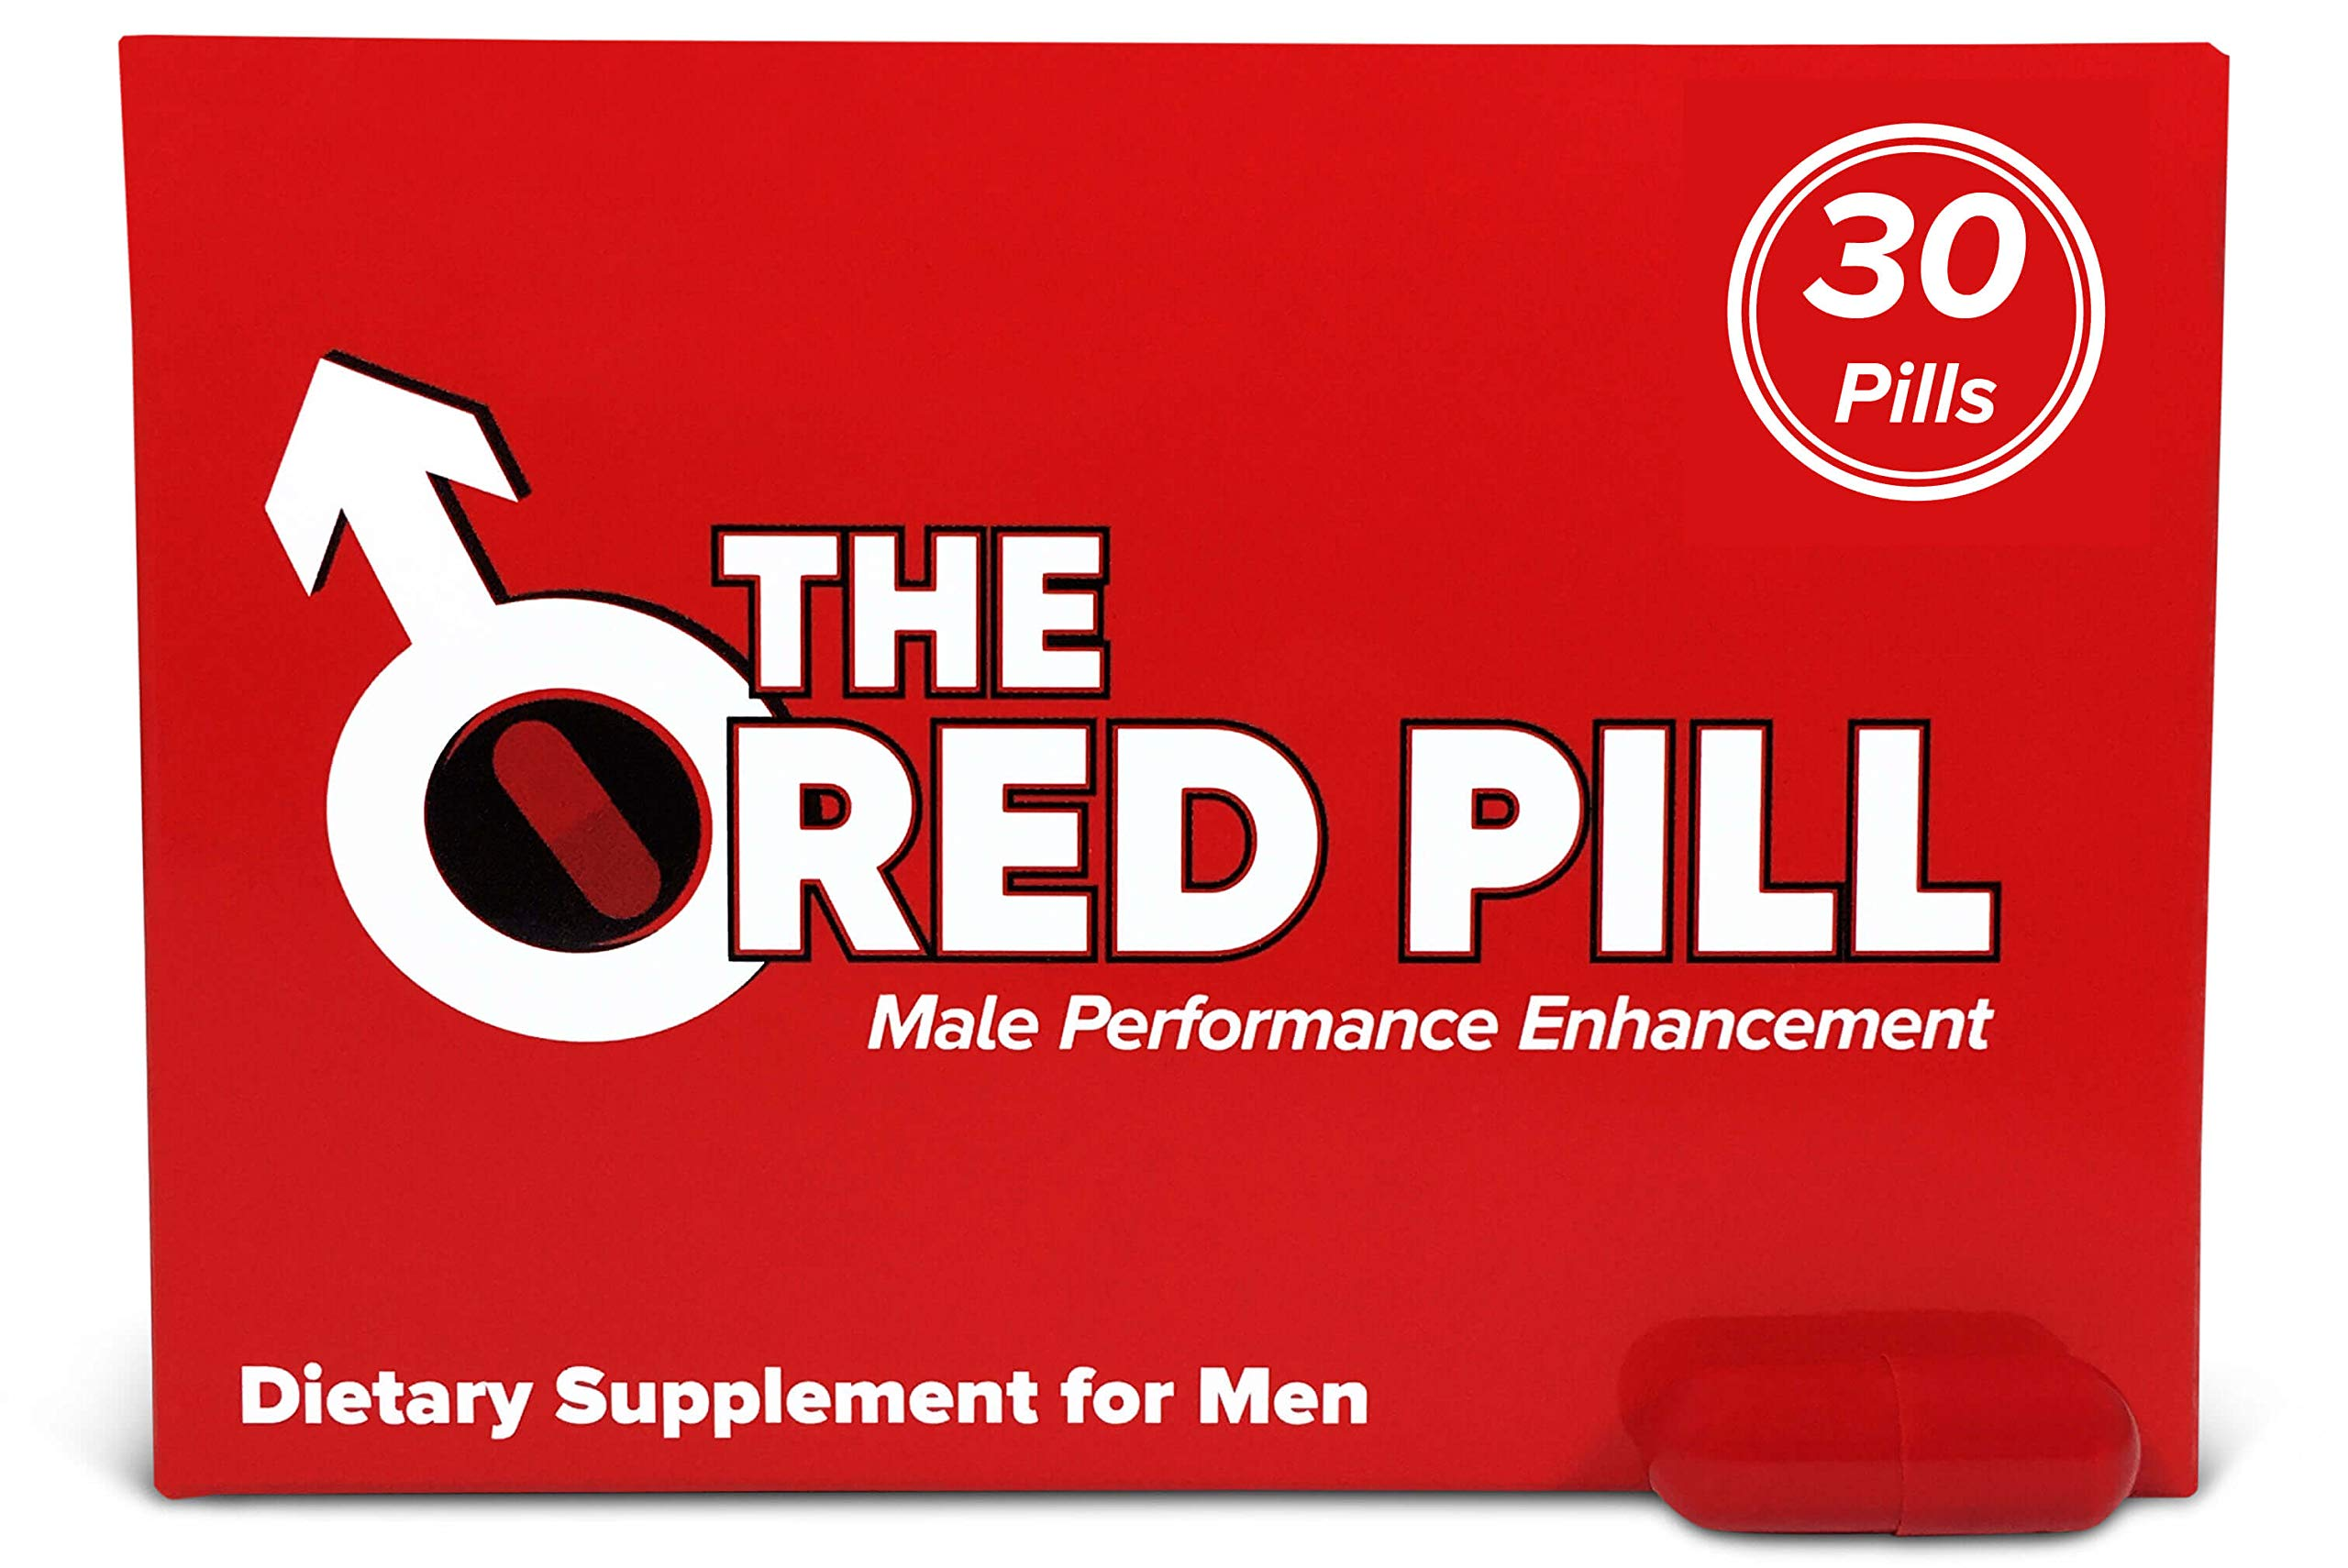 The Red Pill (30 Caps) Male Performance, Energy, Enhancement, and Endurance